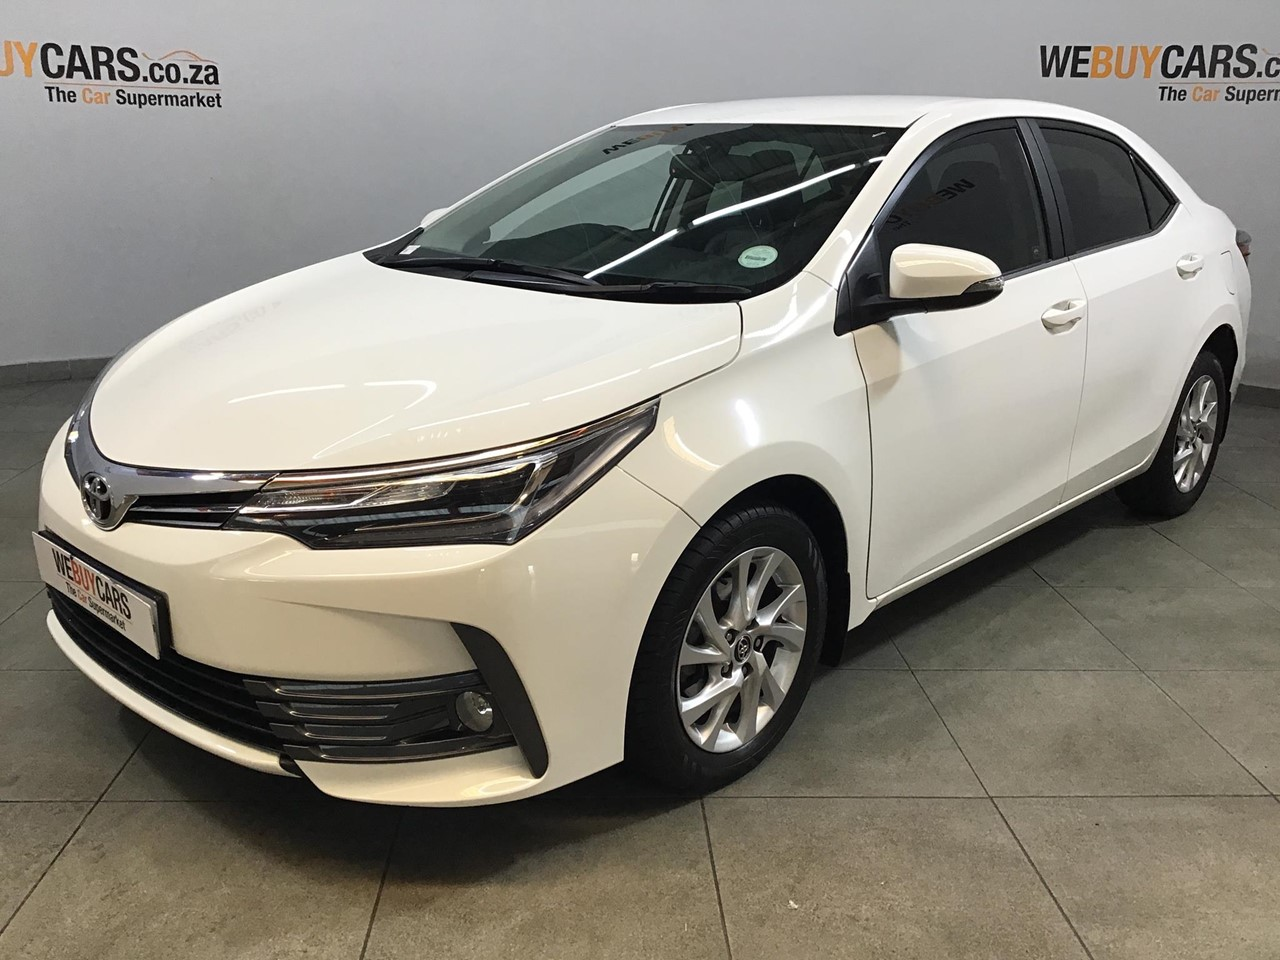 Used 2019 Toyota Corolla 1 8 Exclusive Cvt For Sale Webuycars